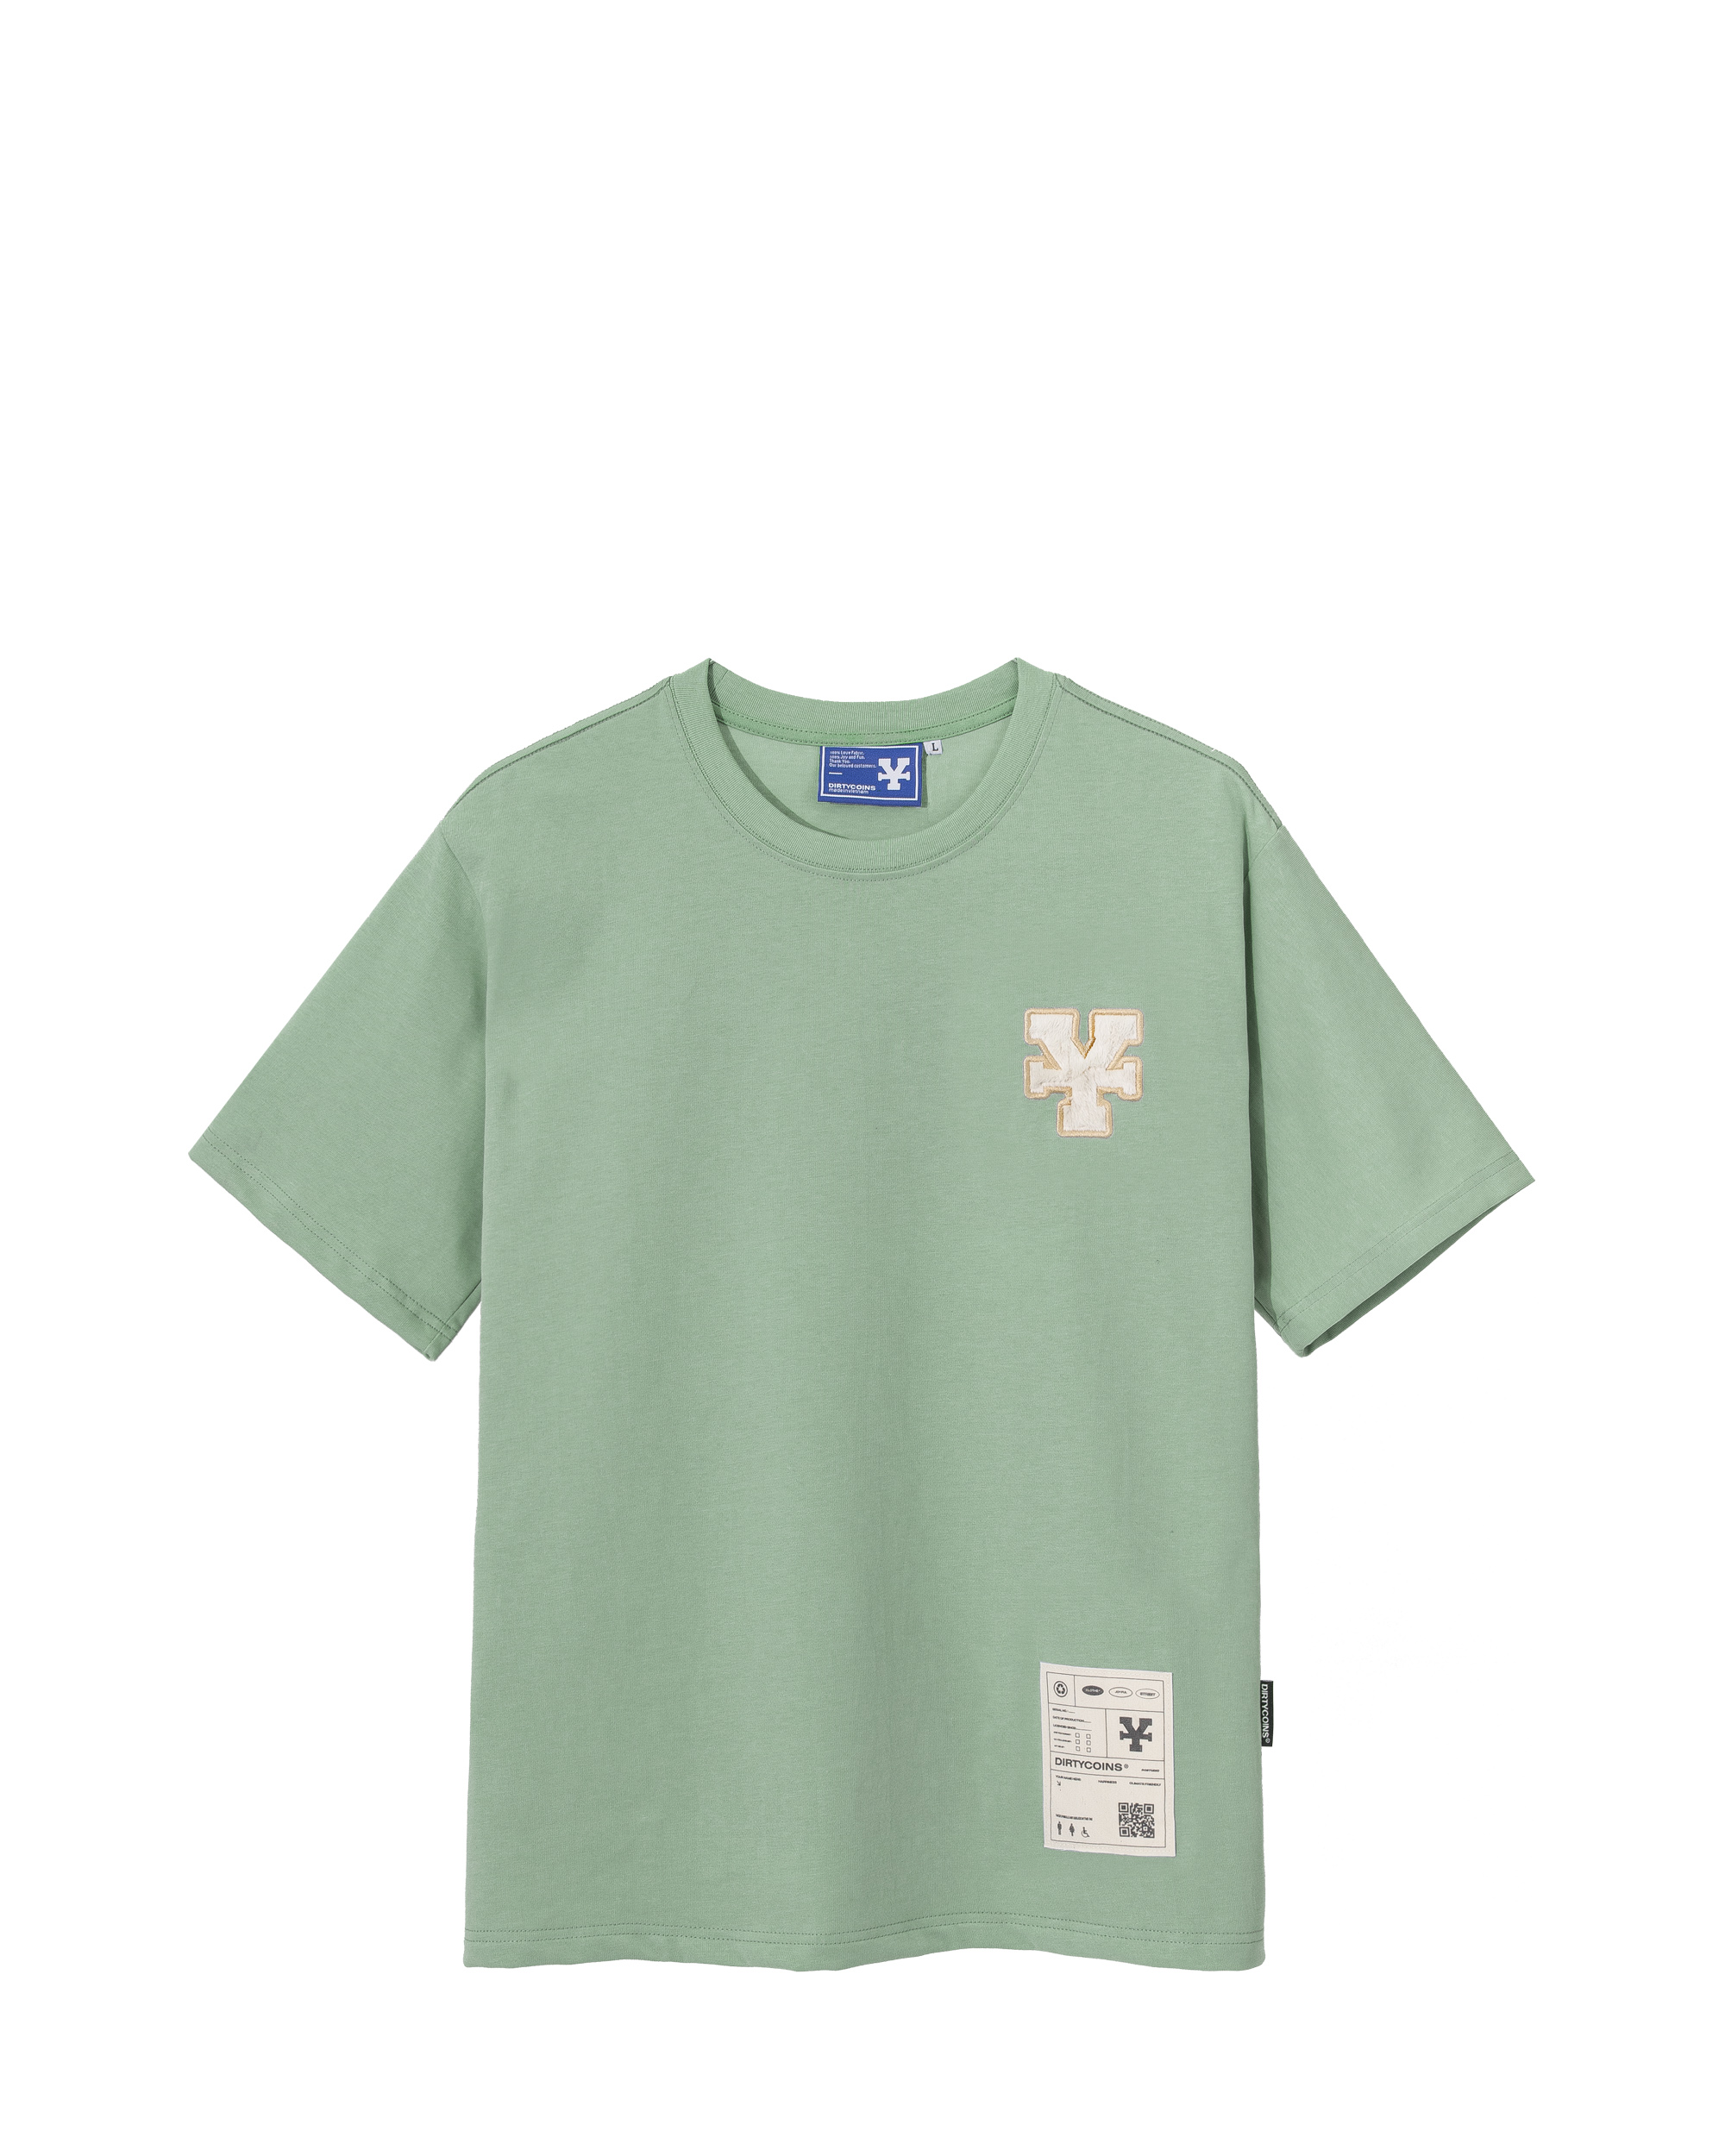 DirtyCoins Y Basic T-Shirt  - Mint